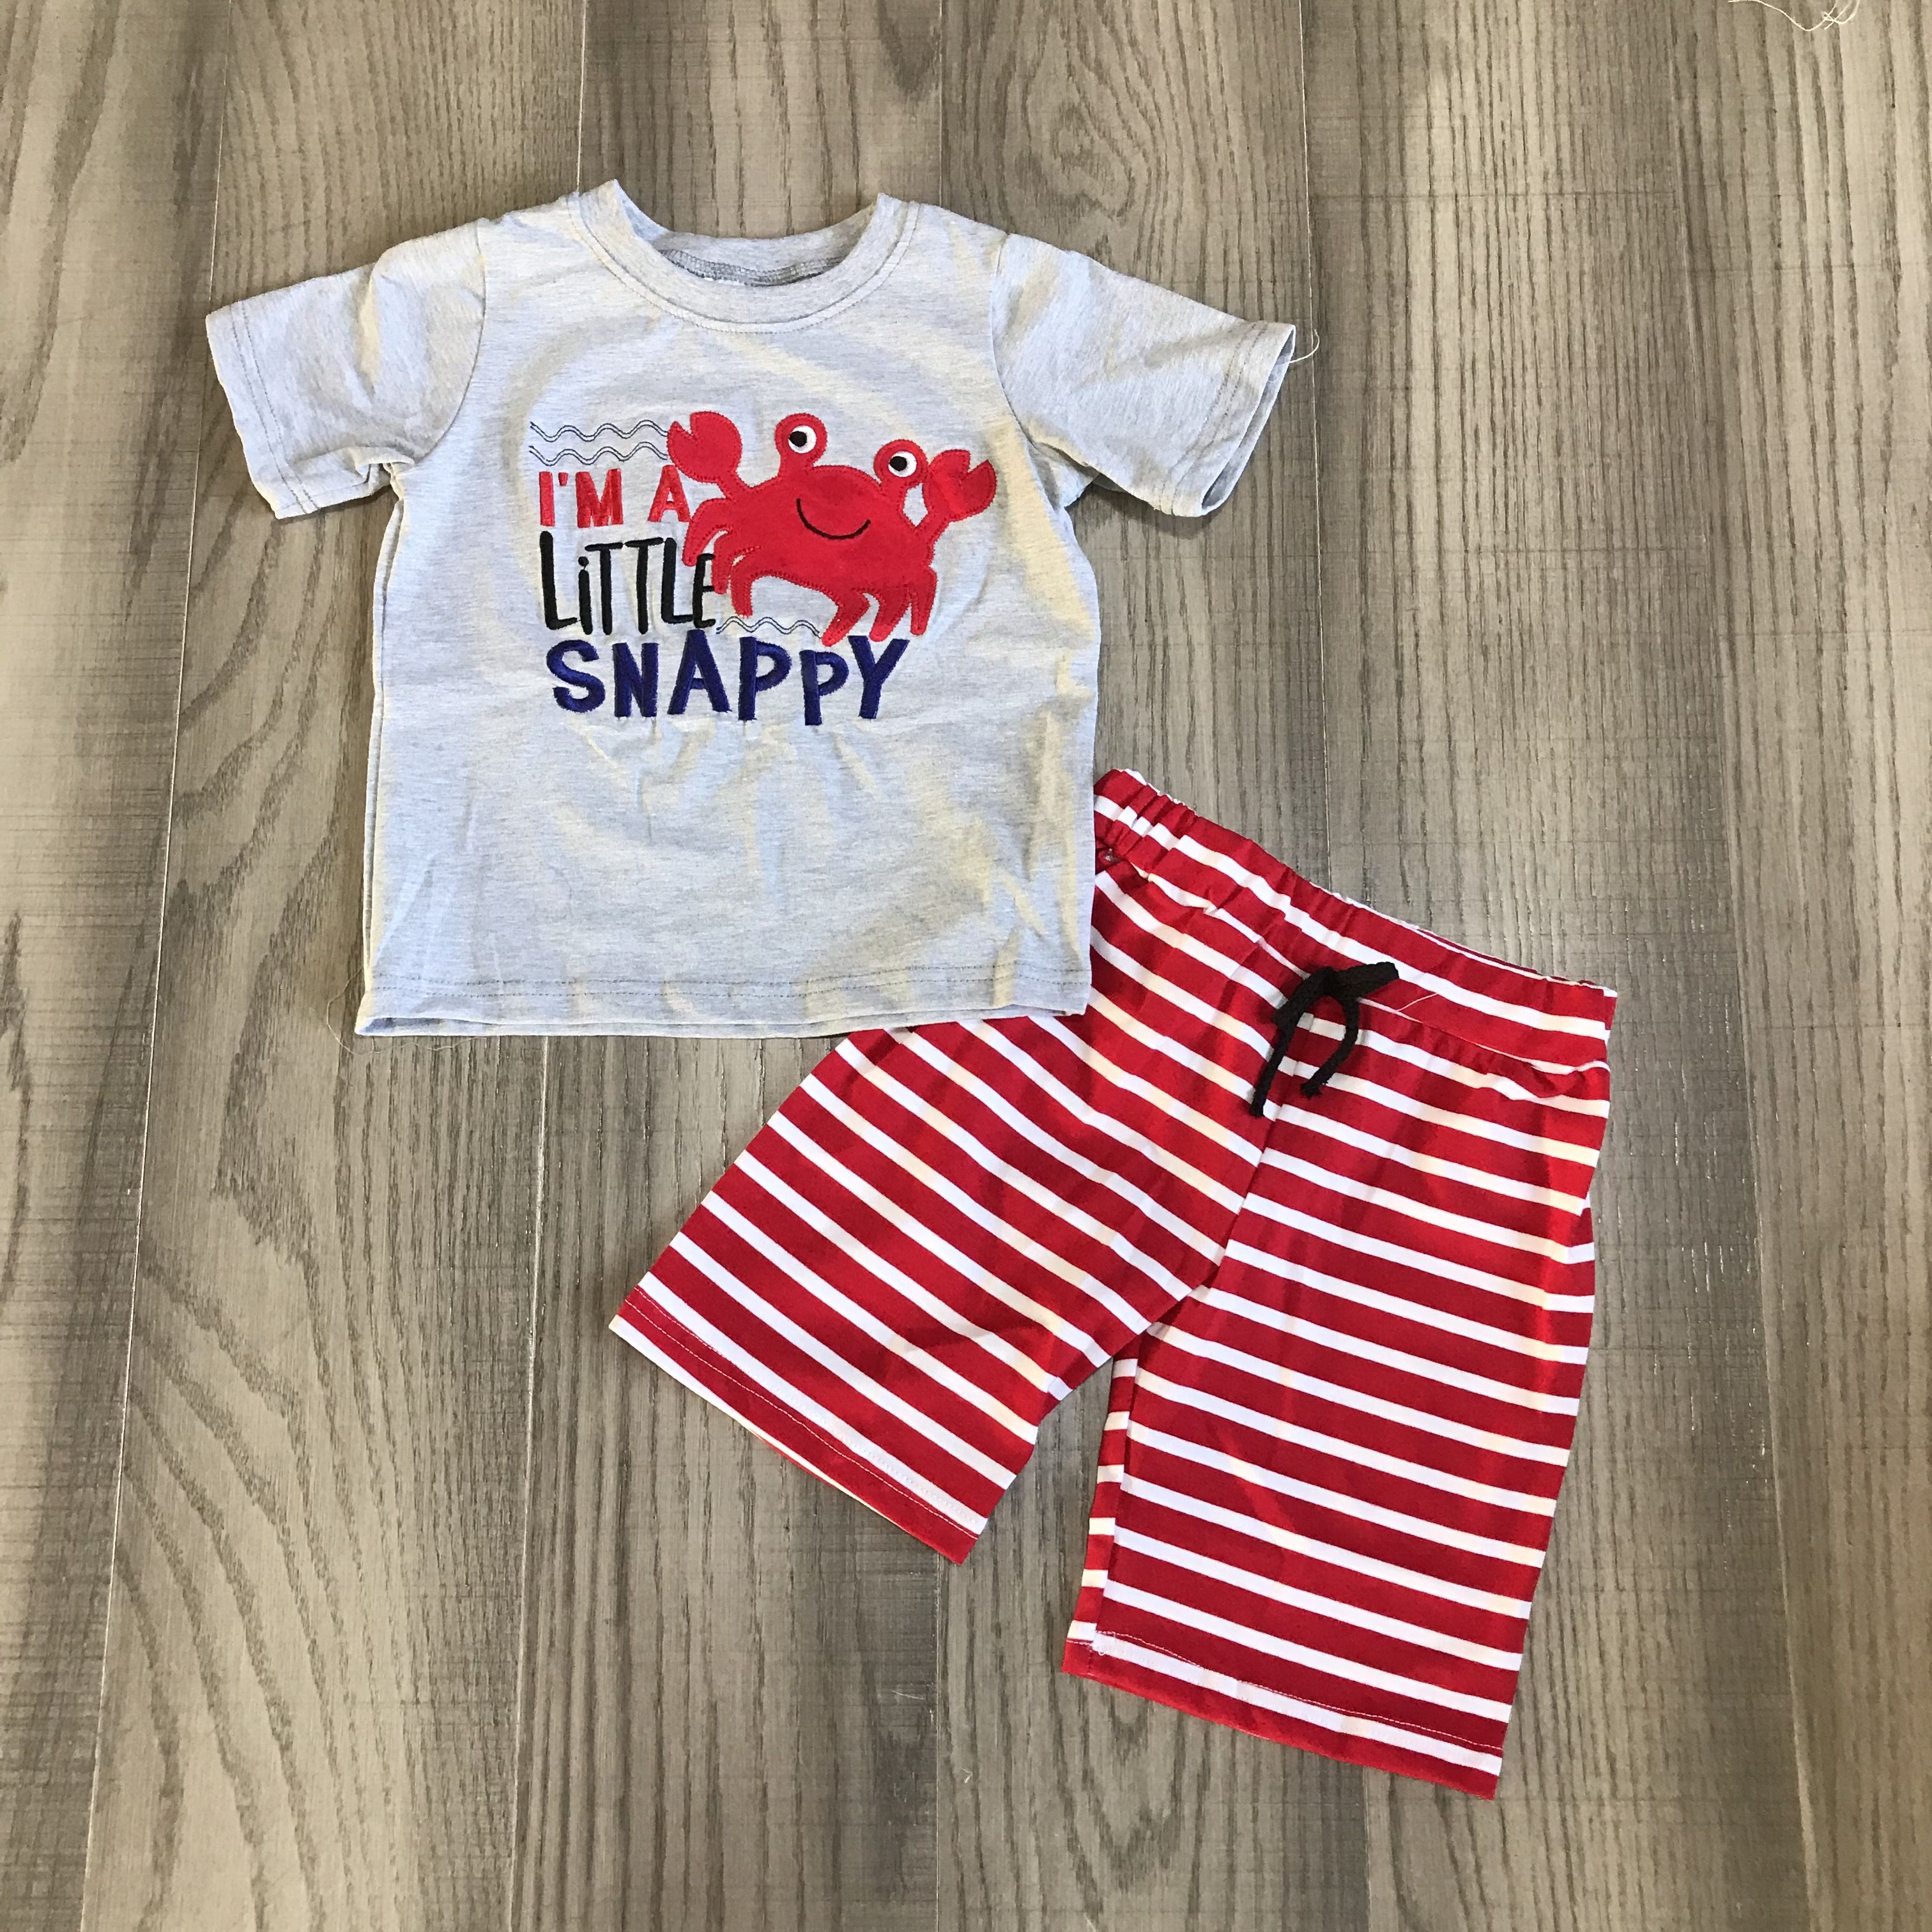 Baby Boy Summer Outfit Boys Little Snappy Clothes Crab Shirt With Red Stripe Shorts